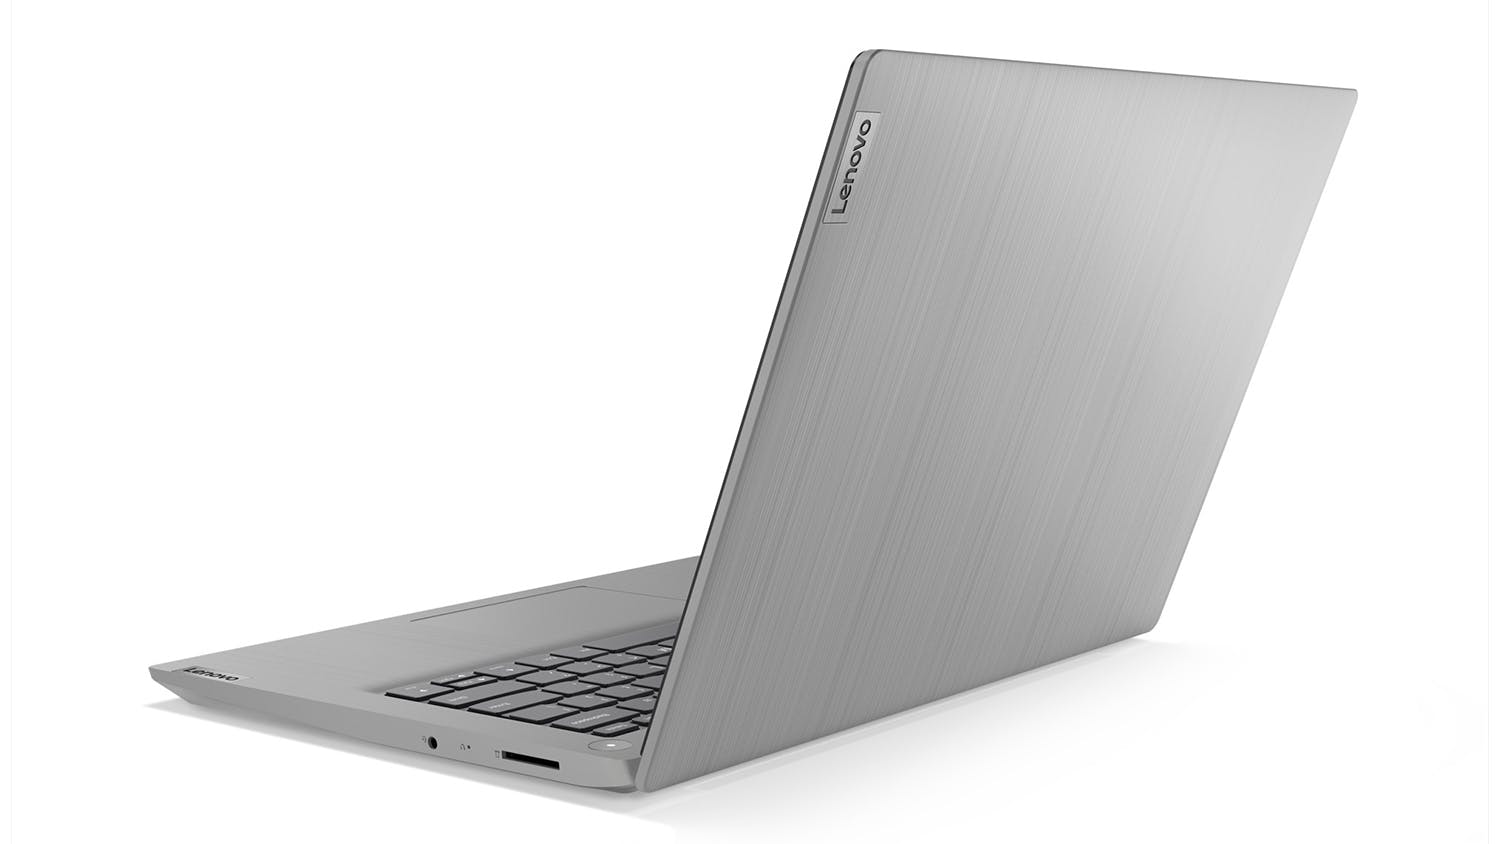 "Lenovo IdeaPad 3 14"" Laptop - Intel Core i5 8GB-RAM 256GB-SSD (81WD00QVAU) - Grey"